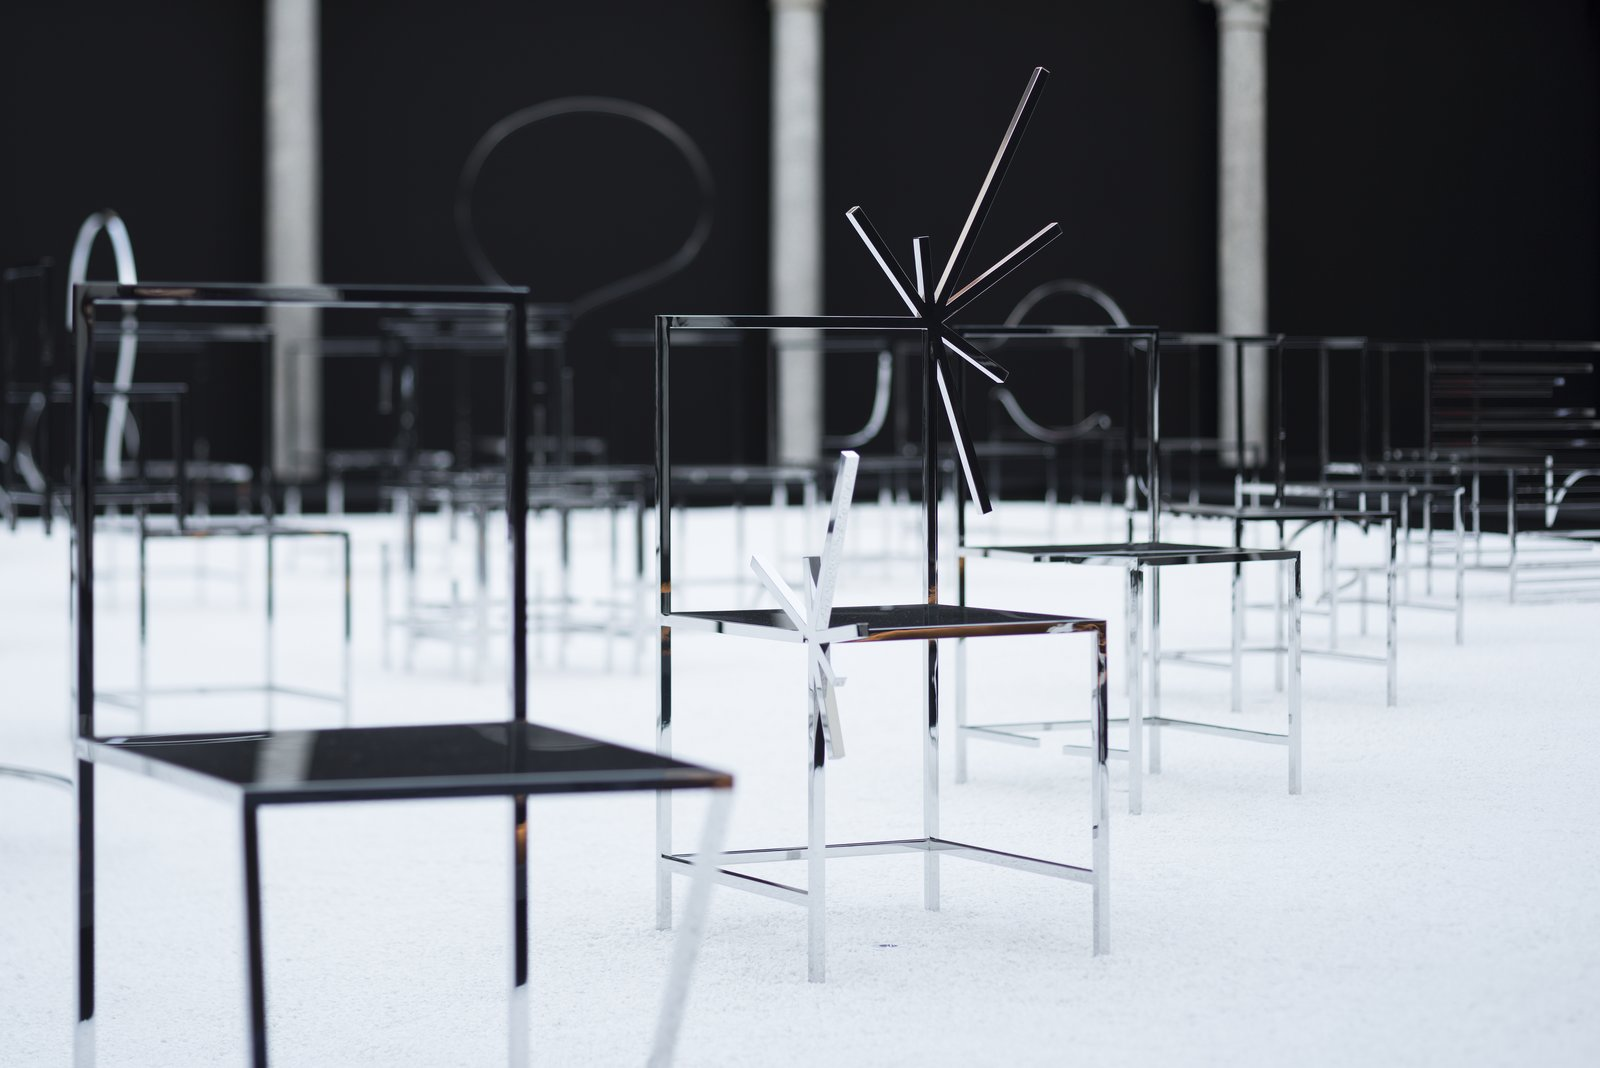 The chairs are completed with a mirrored finish.